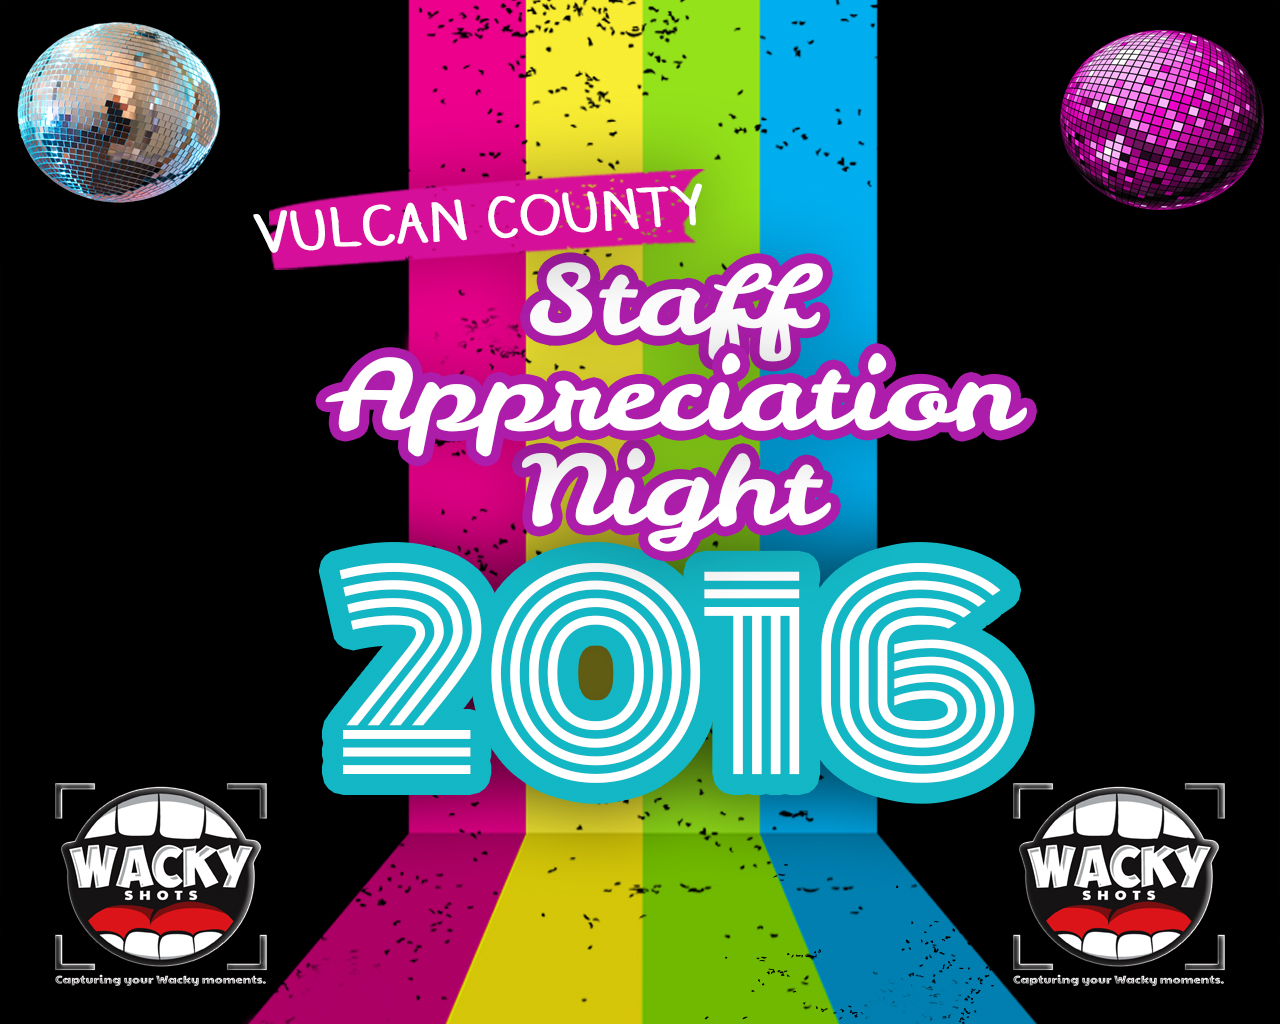 Vulcan County Staff Appreciation Night